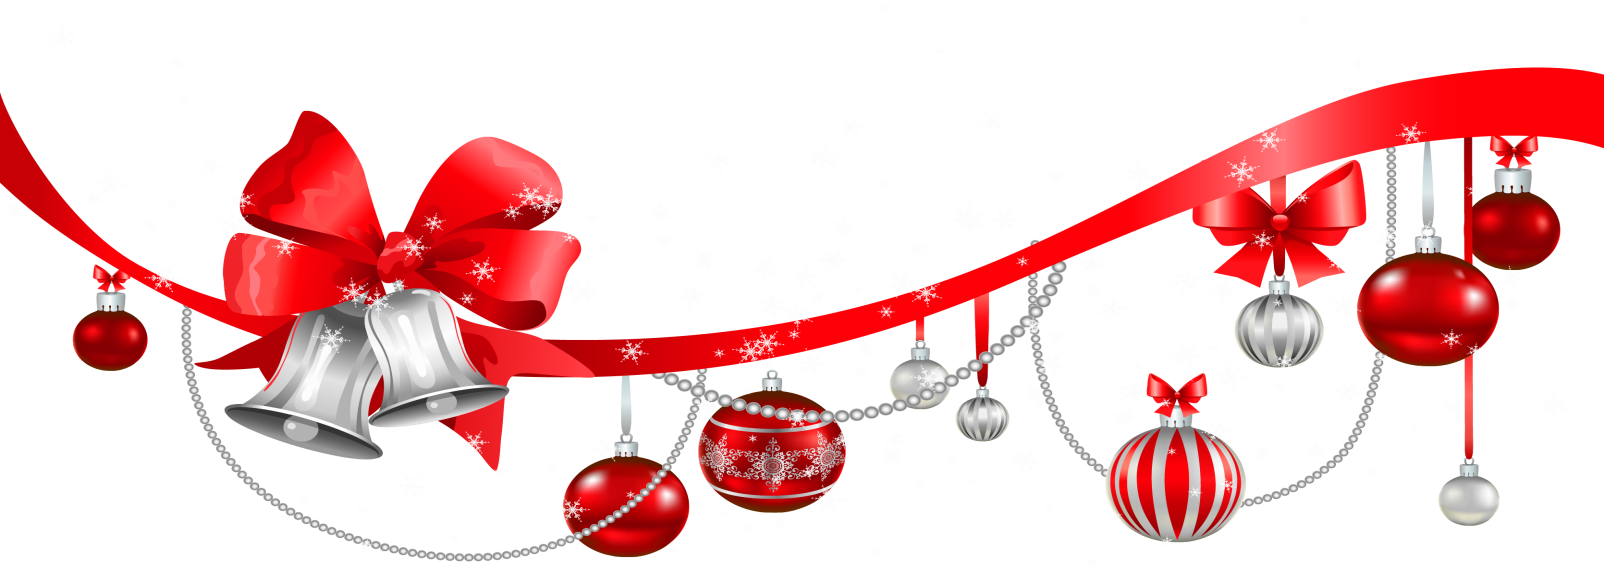 Christmas banner png. Looking for the finishing